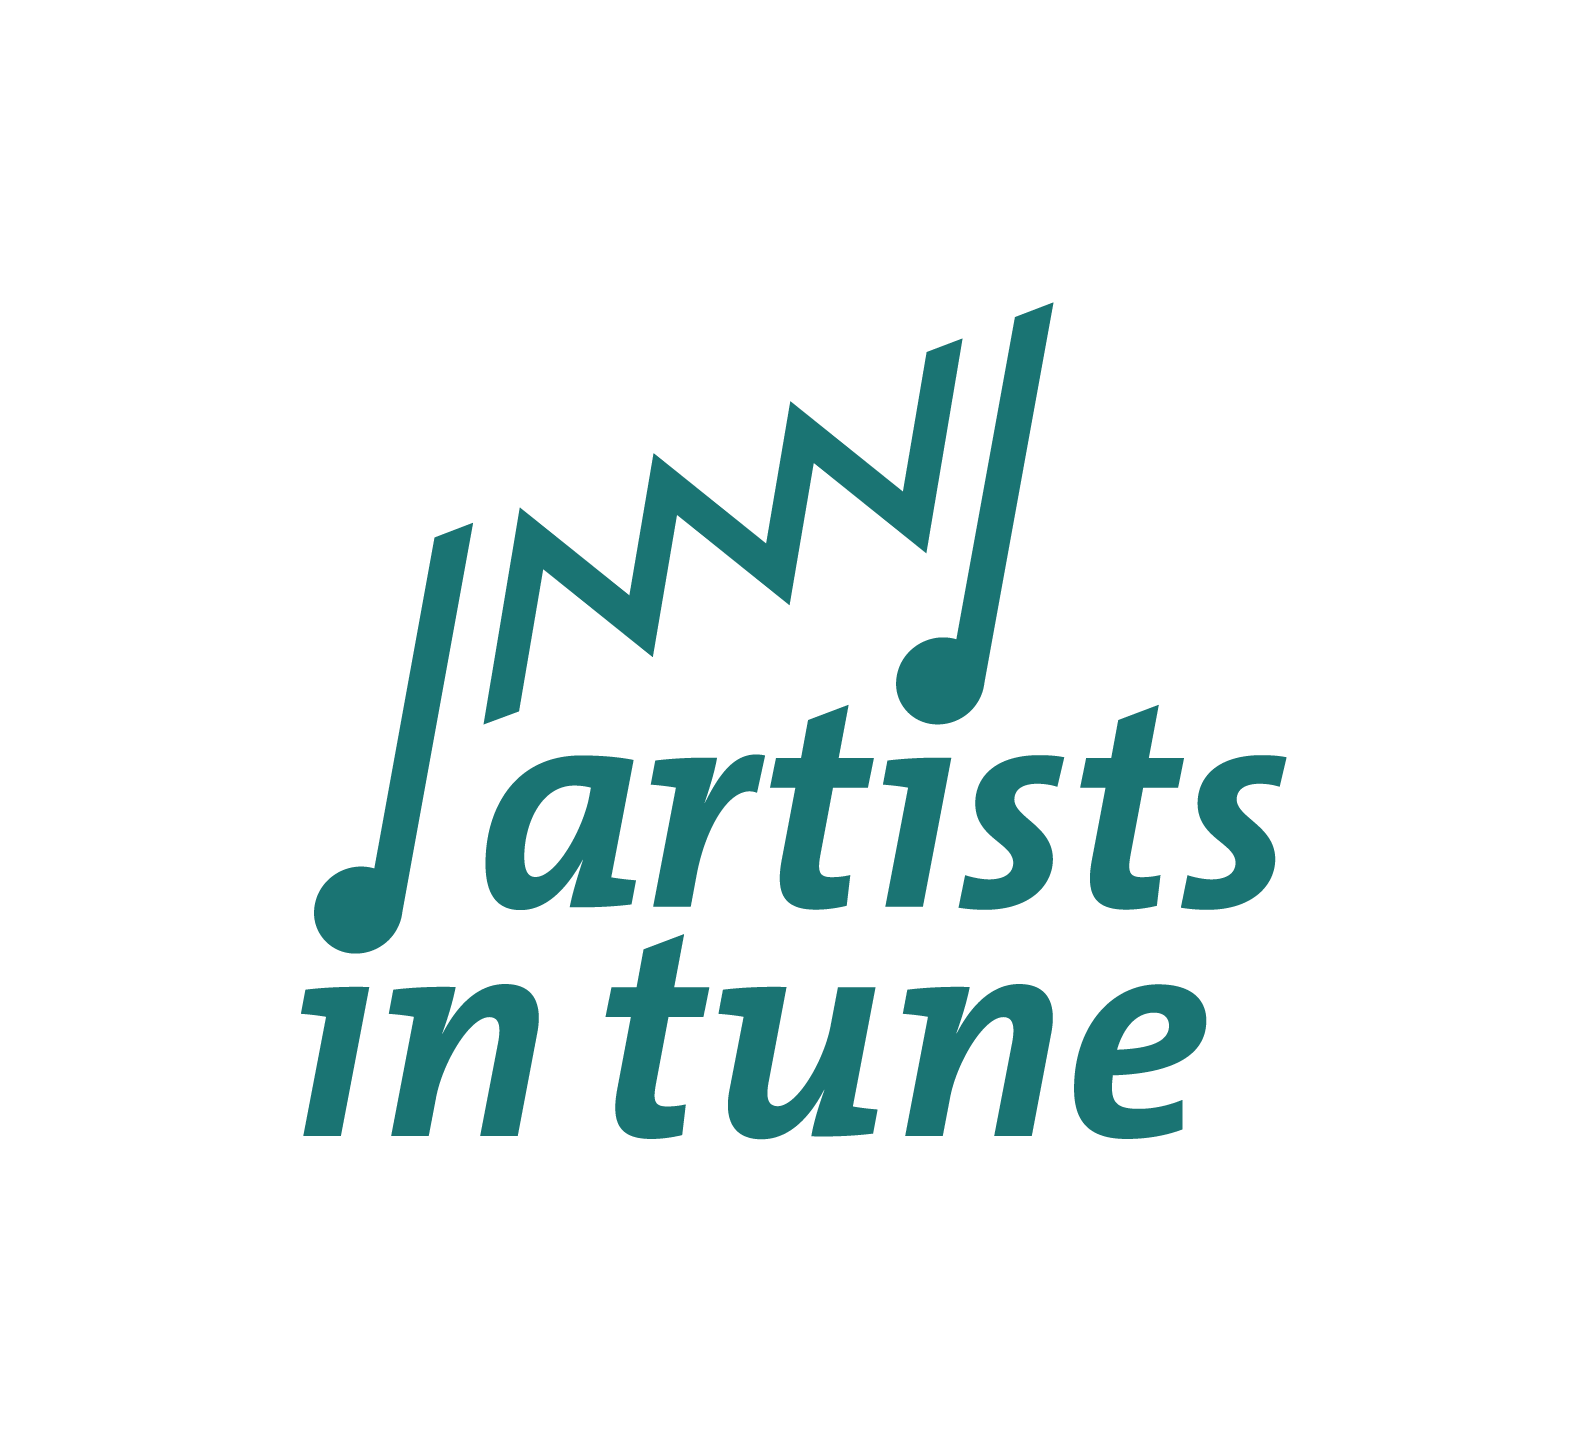 Artists in tune